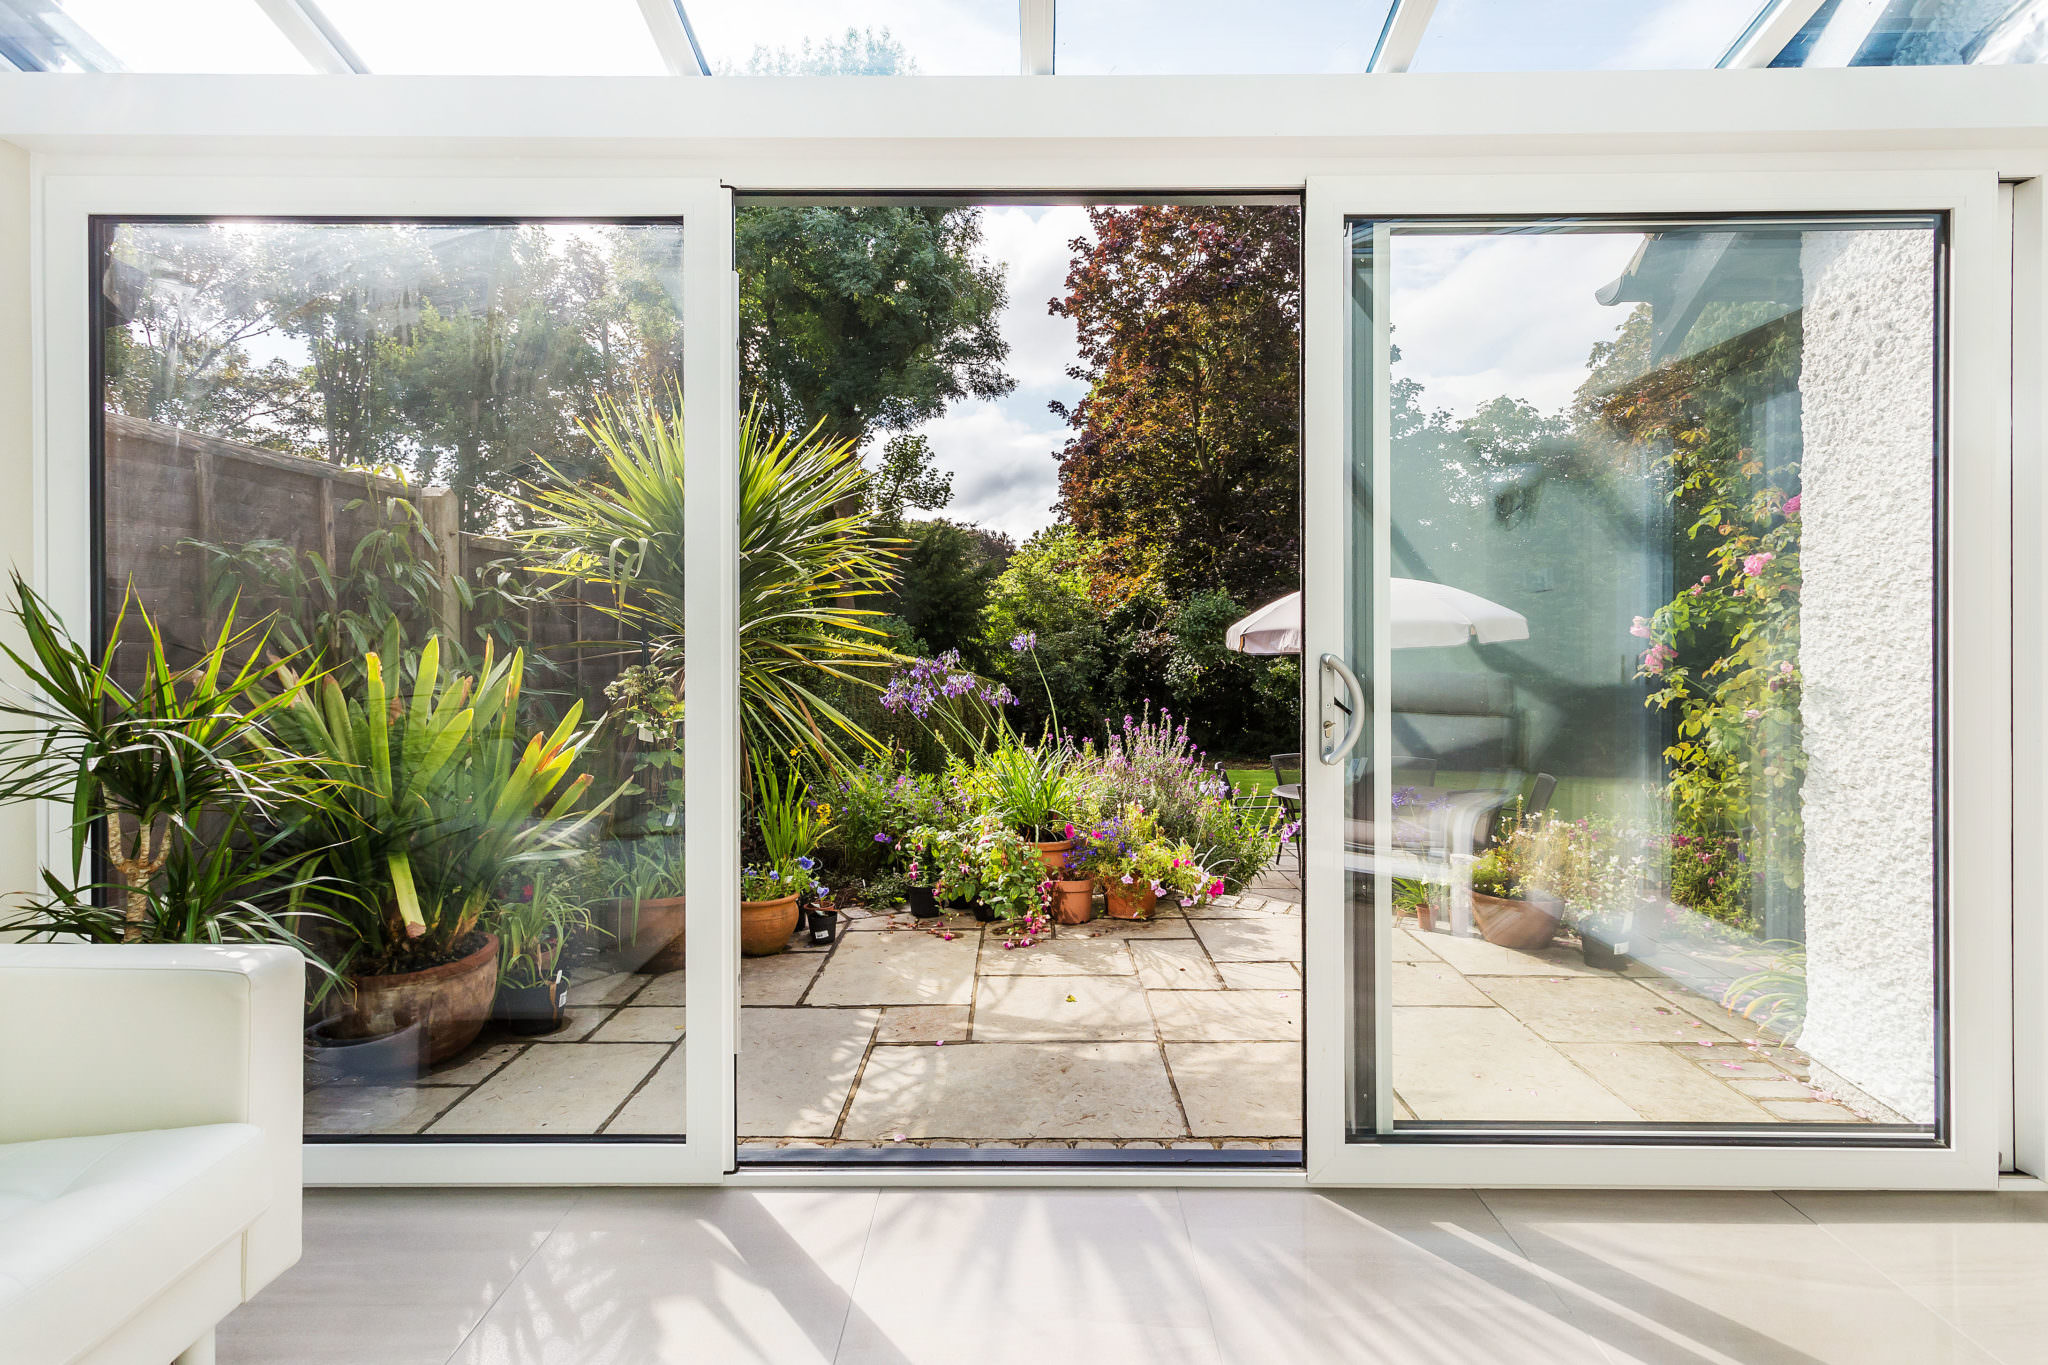 Stand Alone Conservatory Designs : Lean to conservatory purley glass box extension small conservatory